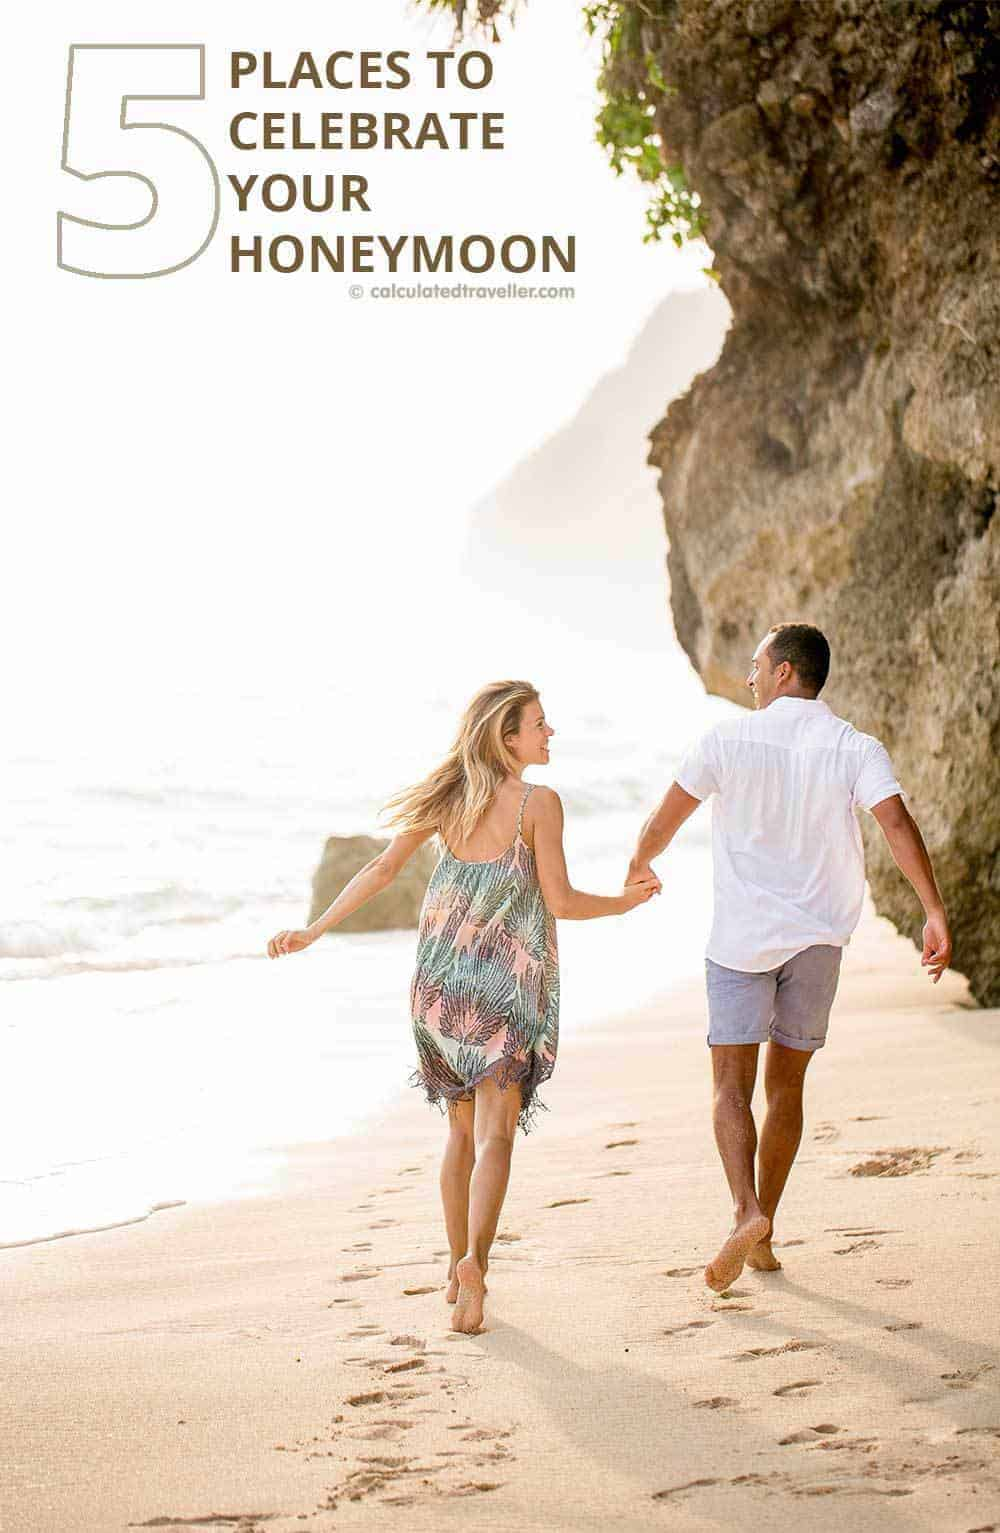 Top 5 Places to Celebrate your Honeymoon by Calculated Traveller